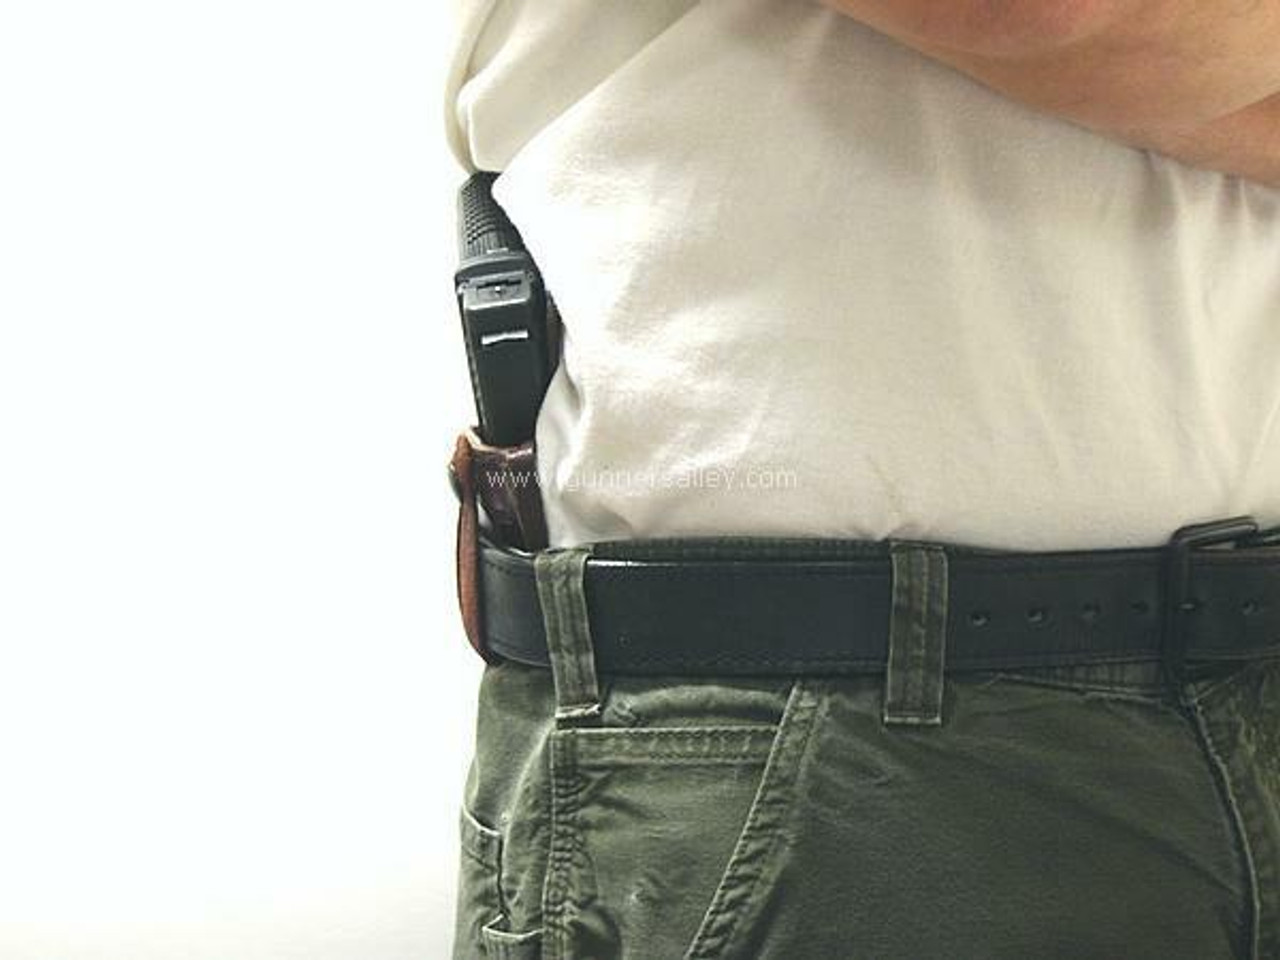 Profile view - Shown on the Belt with a Springfield XD SubCompact 9mm for Demonstration Purposes